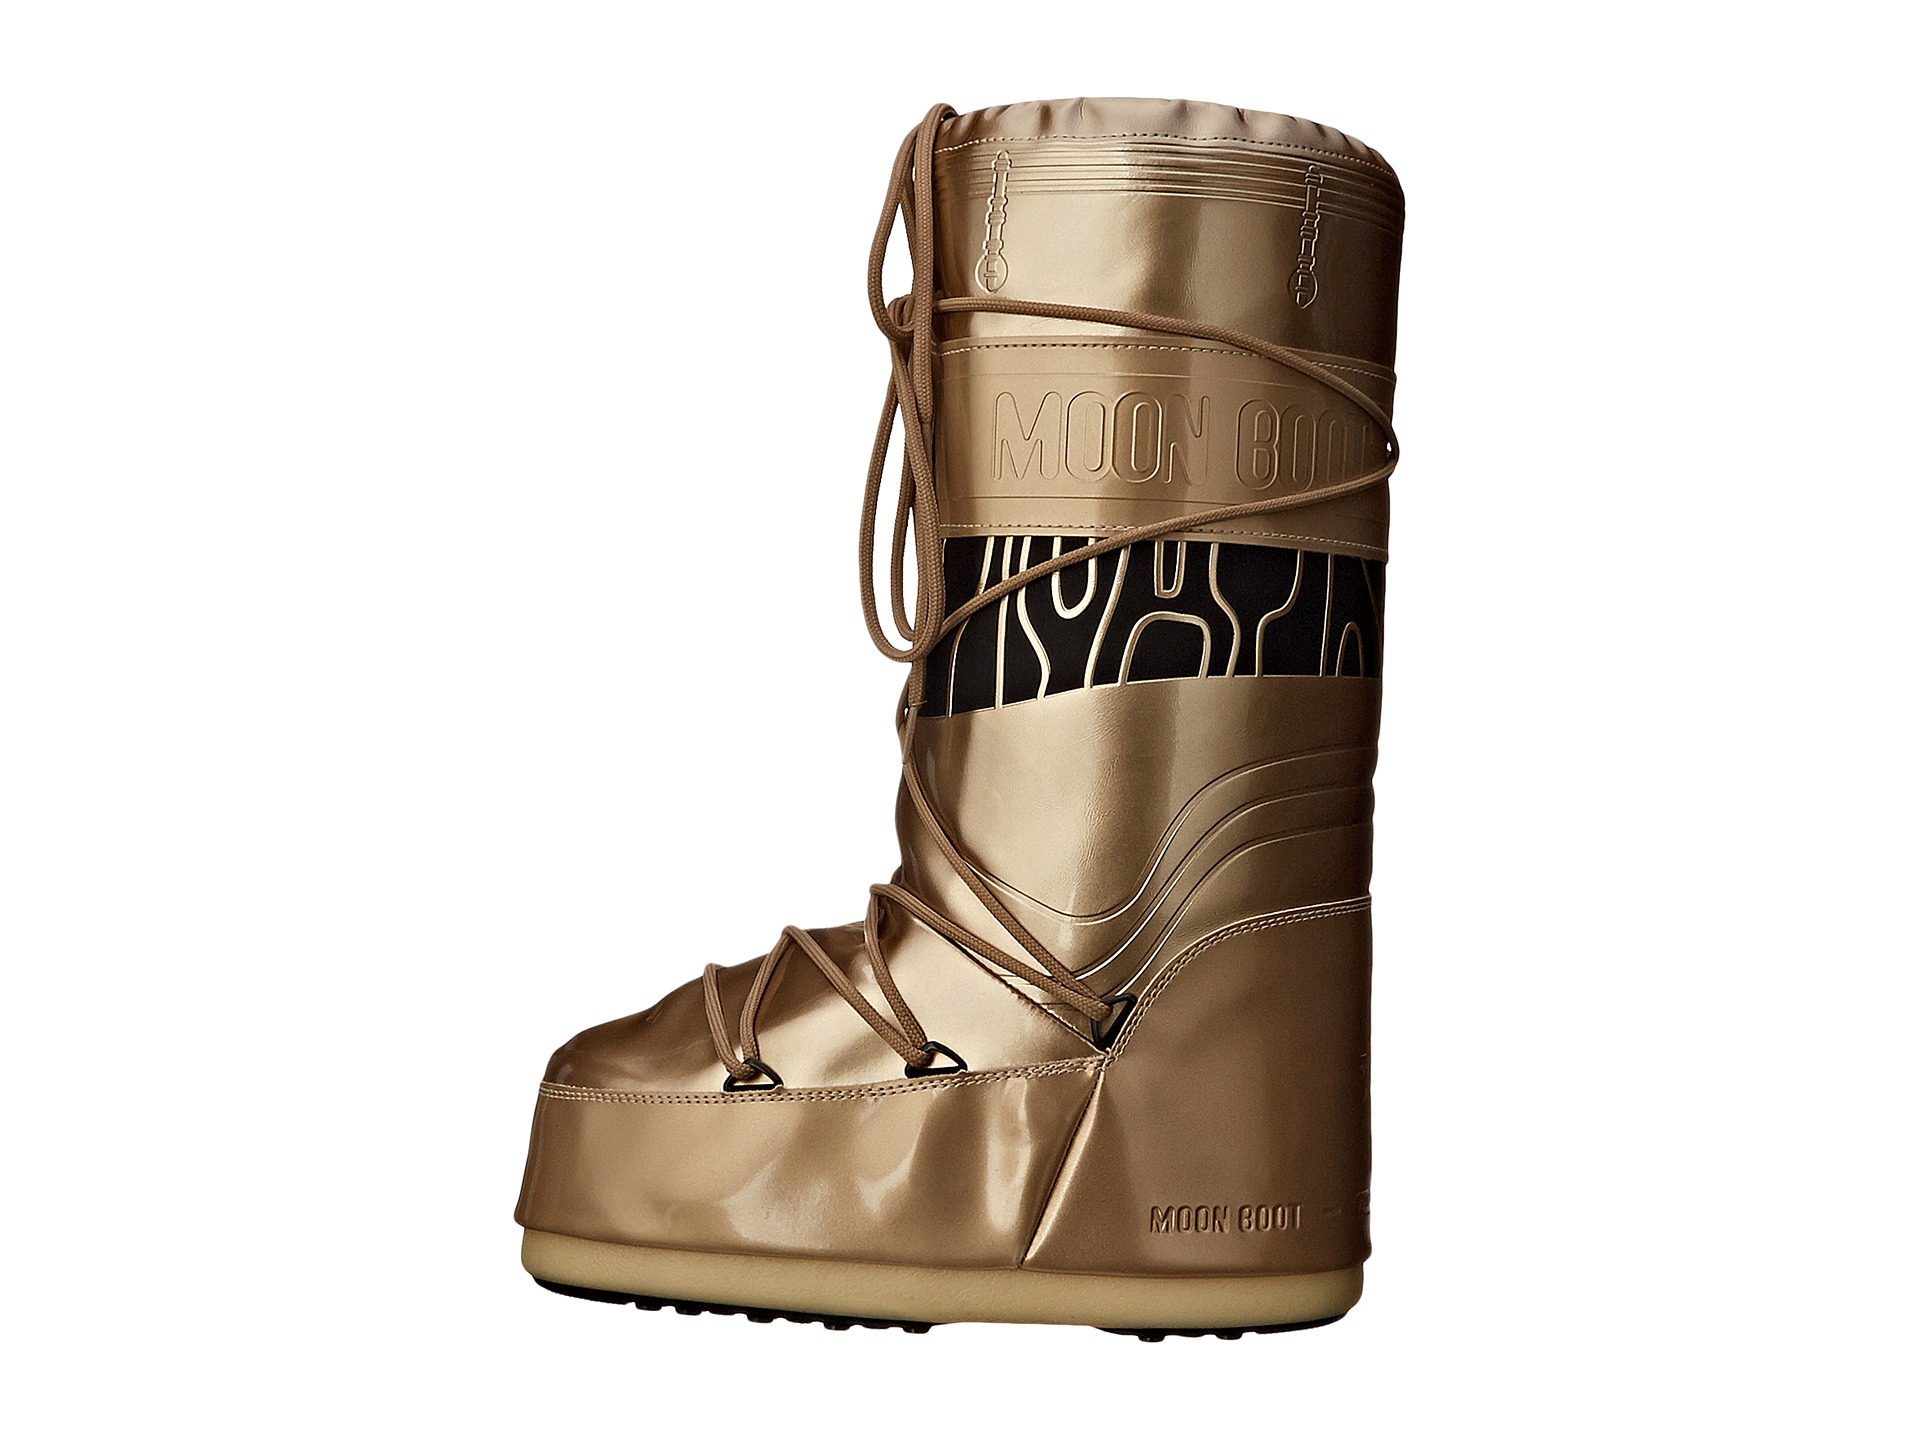 Tecnica Moon Boot 174 Star Wars 174 C 3po At Zappos Com